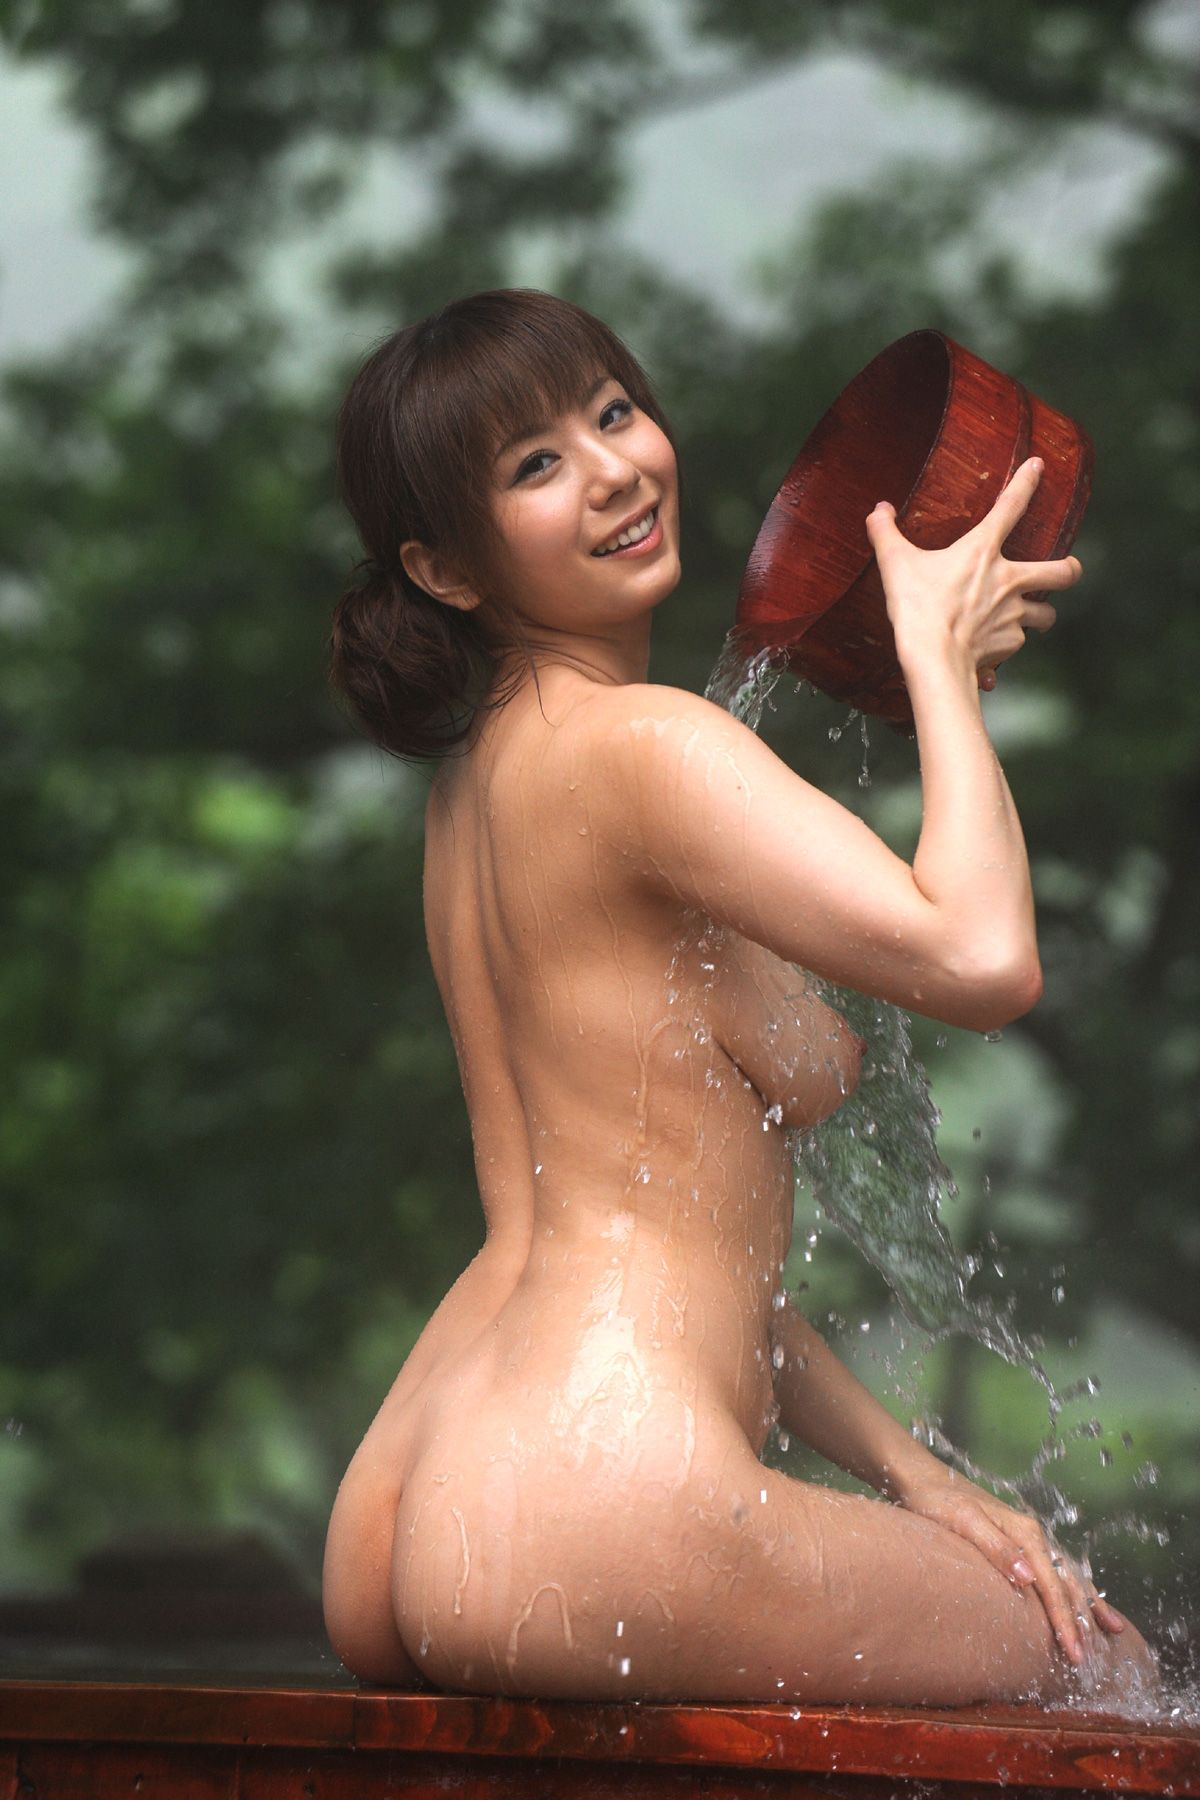 from Ace hot japanese girl taking nude bath in shower